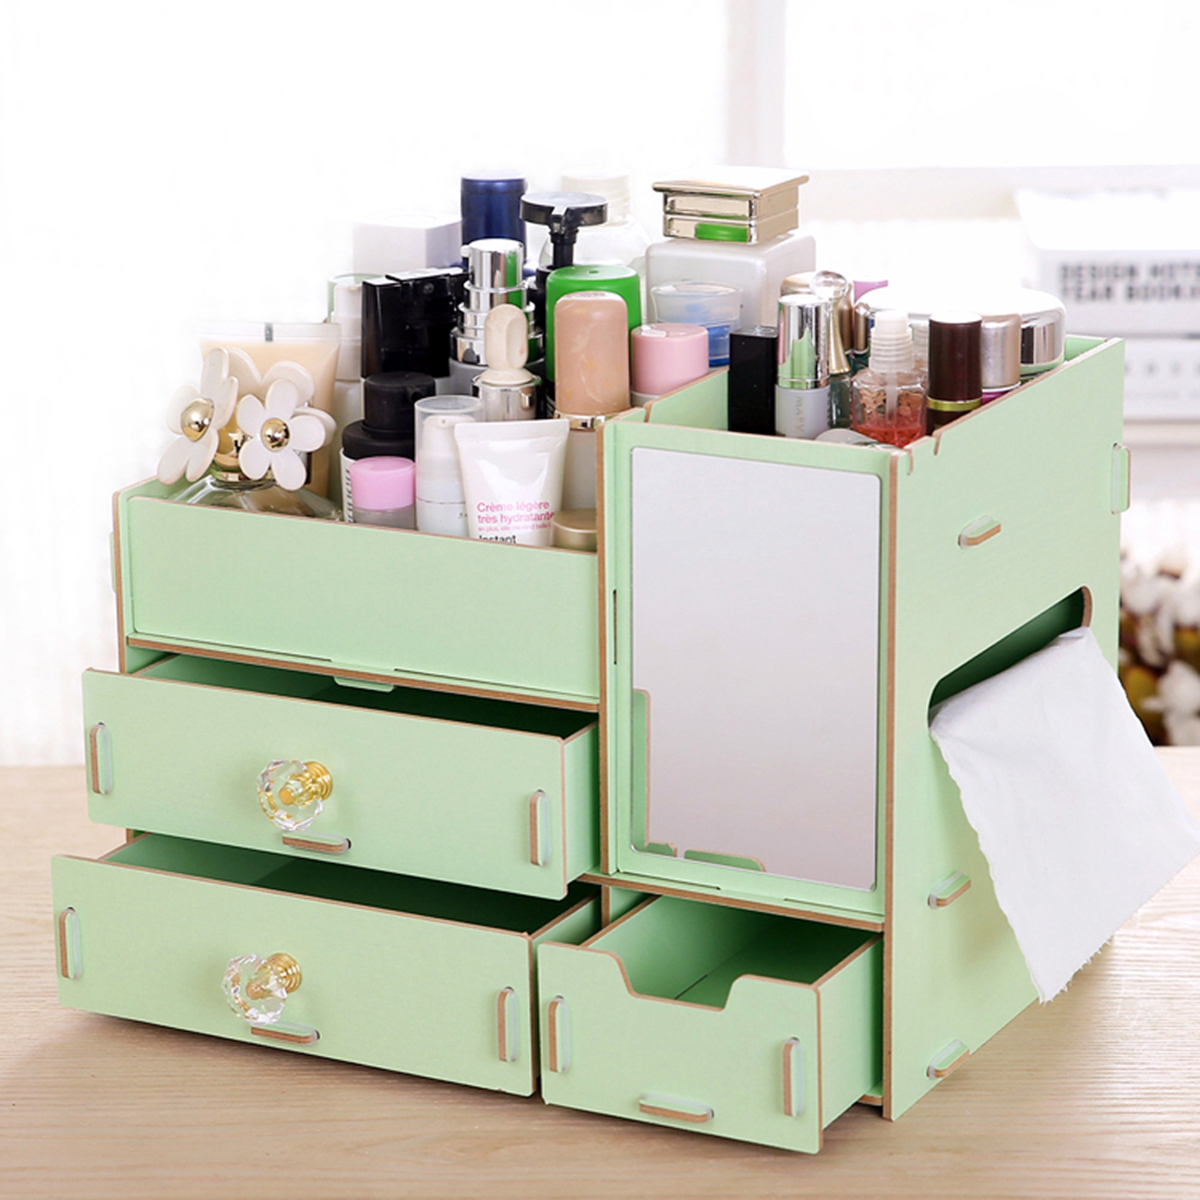 Us 24 47 34 Off Desktop Cosmetic Storage Box Diy Fixed Wooden Makeup Organizer With 3 Drawers Mirror Jewelry Cabinet Container Dressing Case In Eye